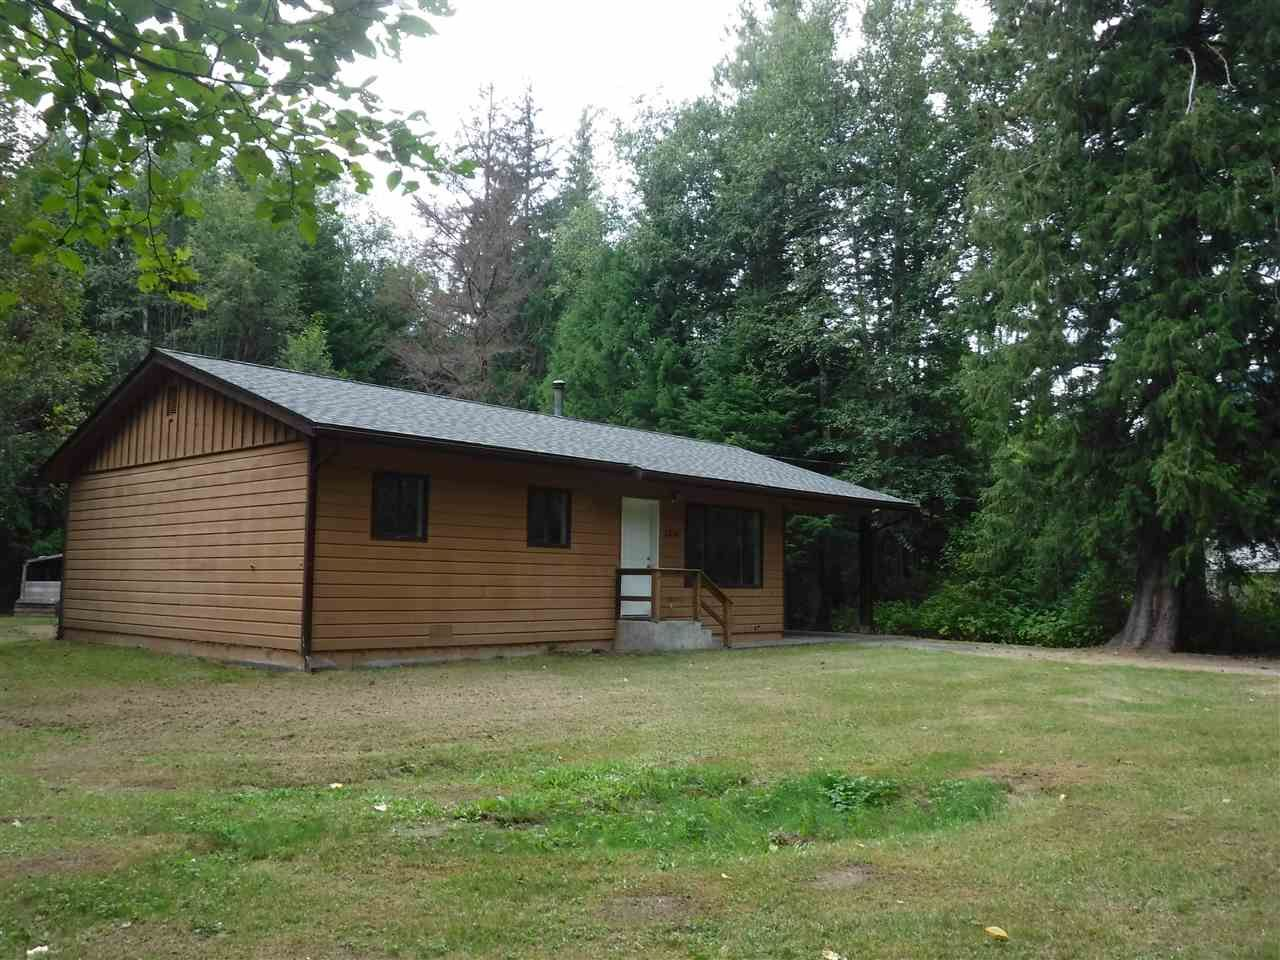 Photo 2: Photos: 2536 N DOUGLAS Drive in Bella Coola: Bella Coola/Hagensborg House for sale (Williams Lake (Zone 27))  : MLS®# R2399897